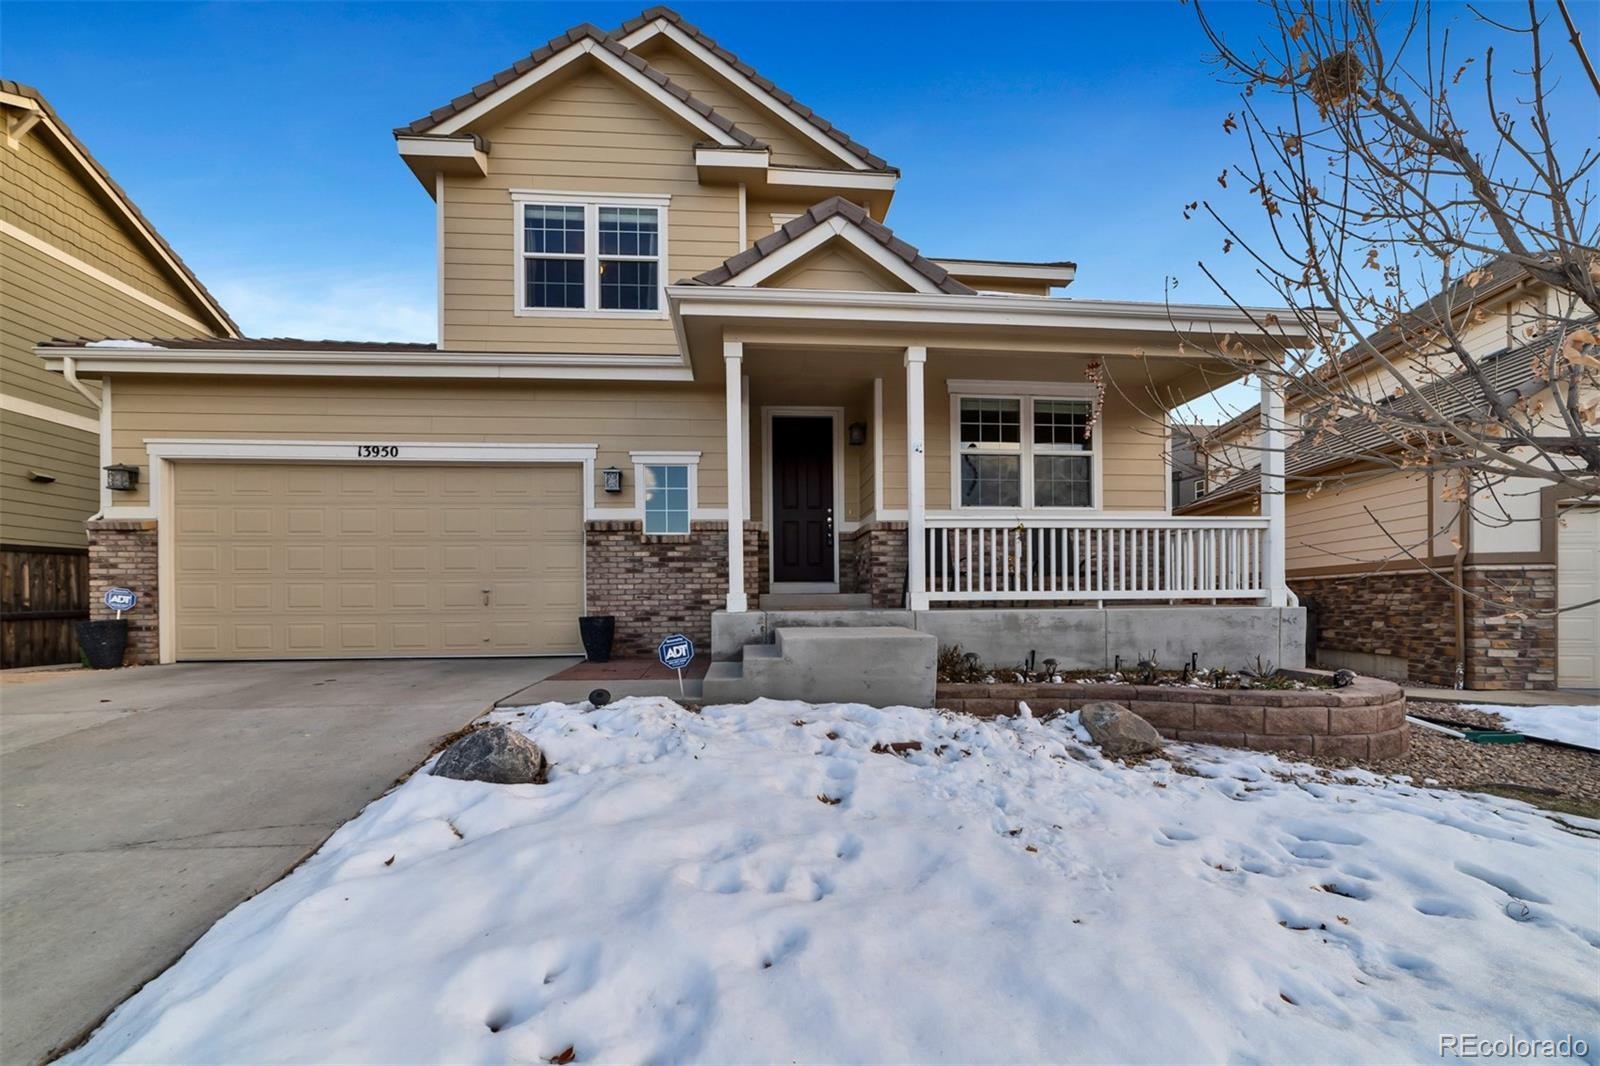 MLS# 8550062 - 1 - 13950 Eisberry Way, Parker, CO 80134